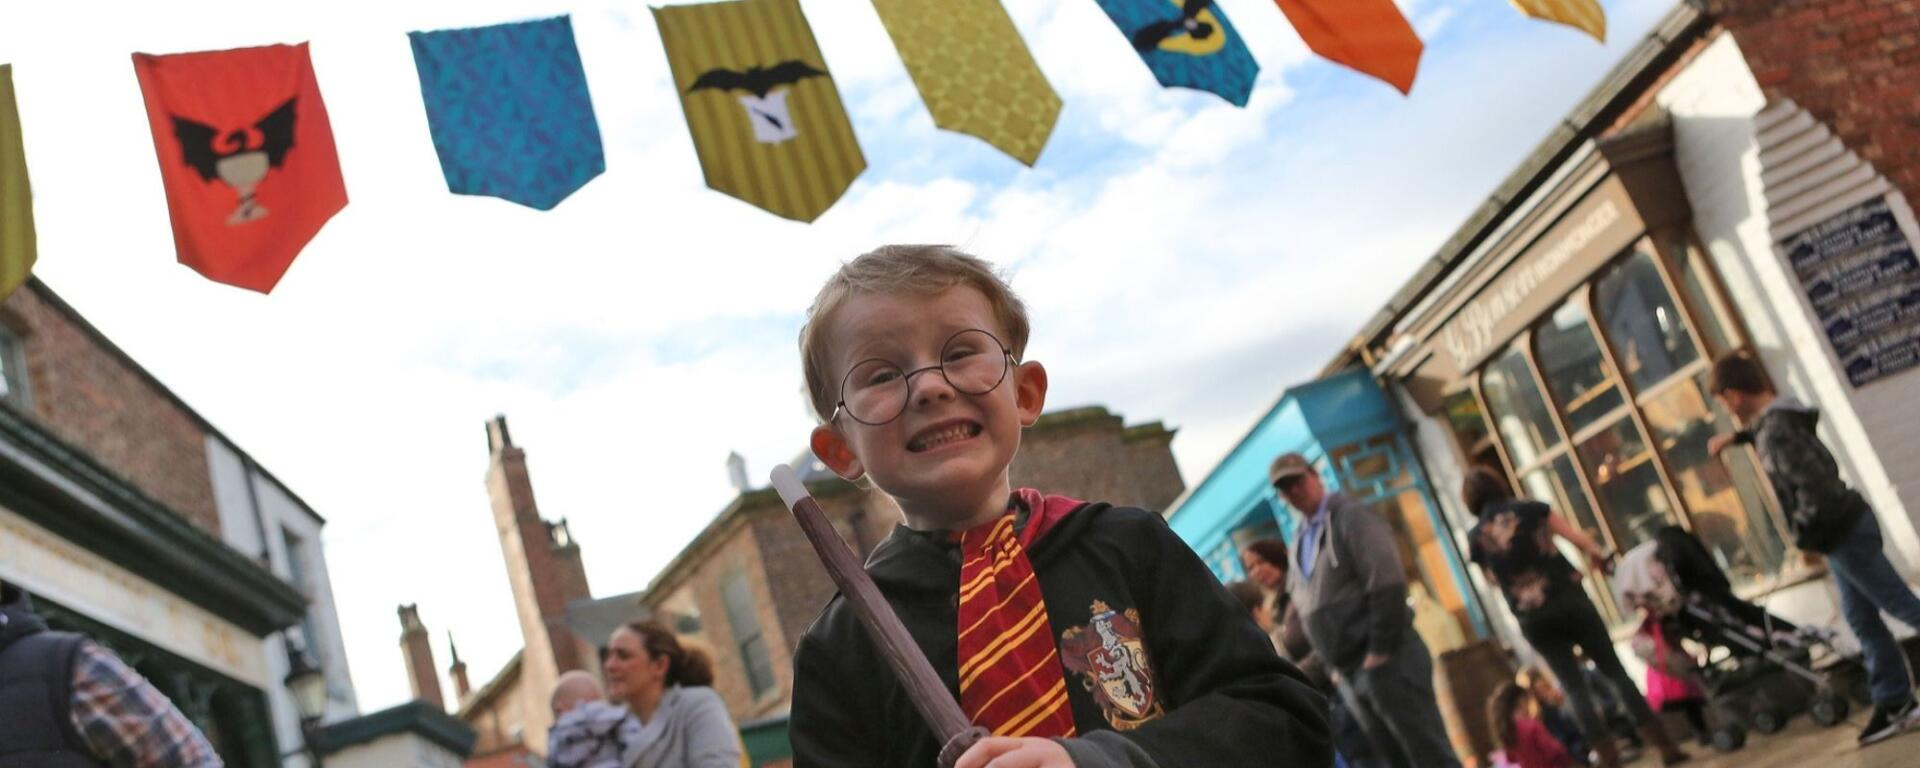 Young Visitor Dressed As A Wizard At Preston Park Museum